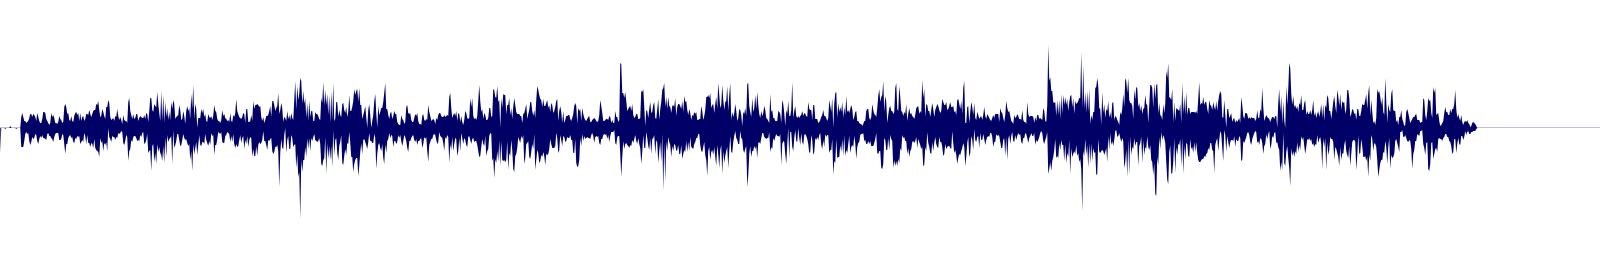 waveform of track #103681